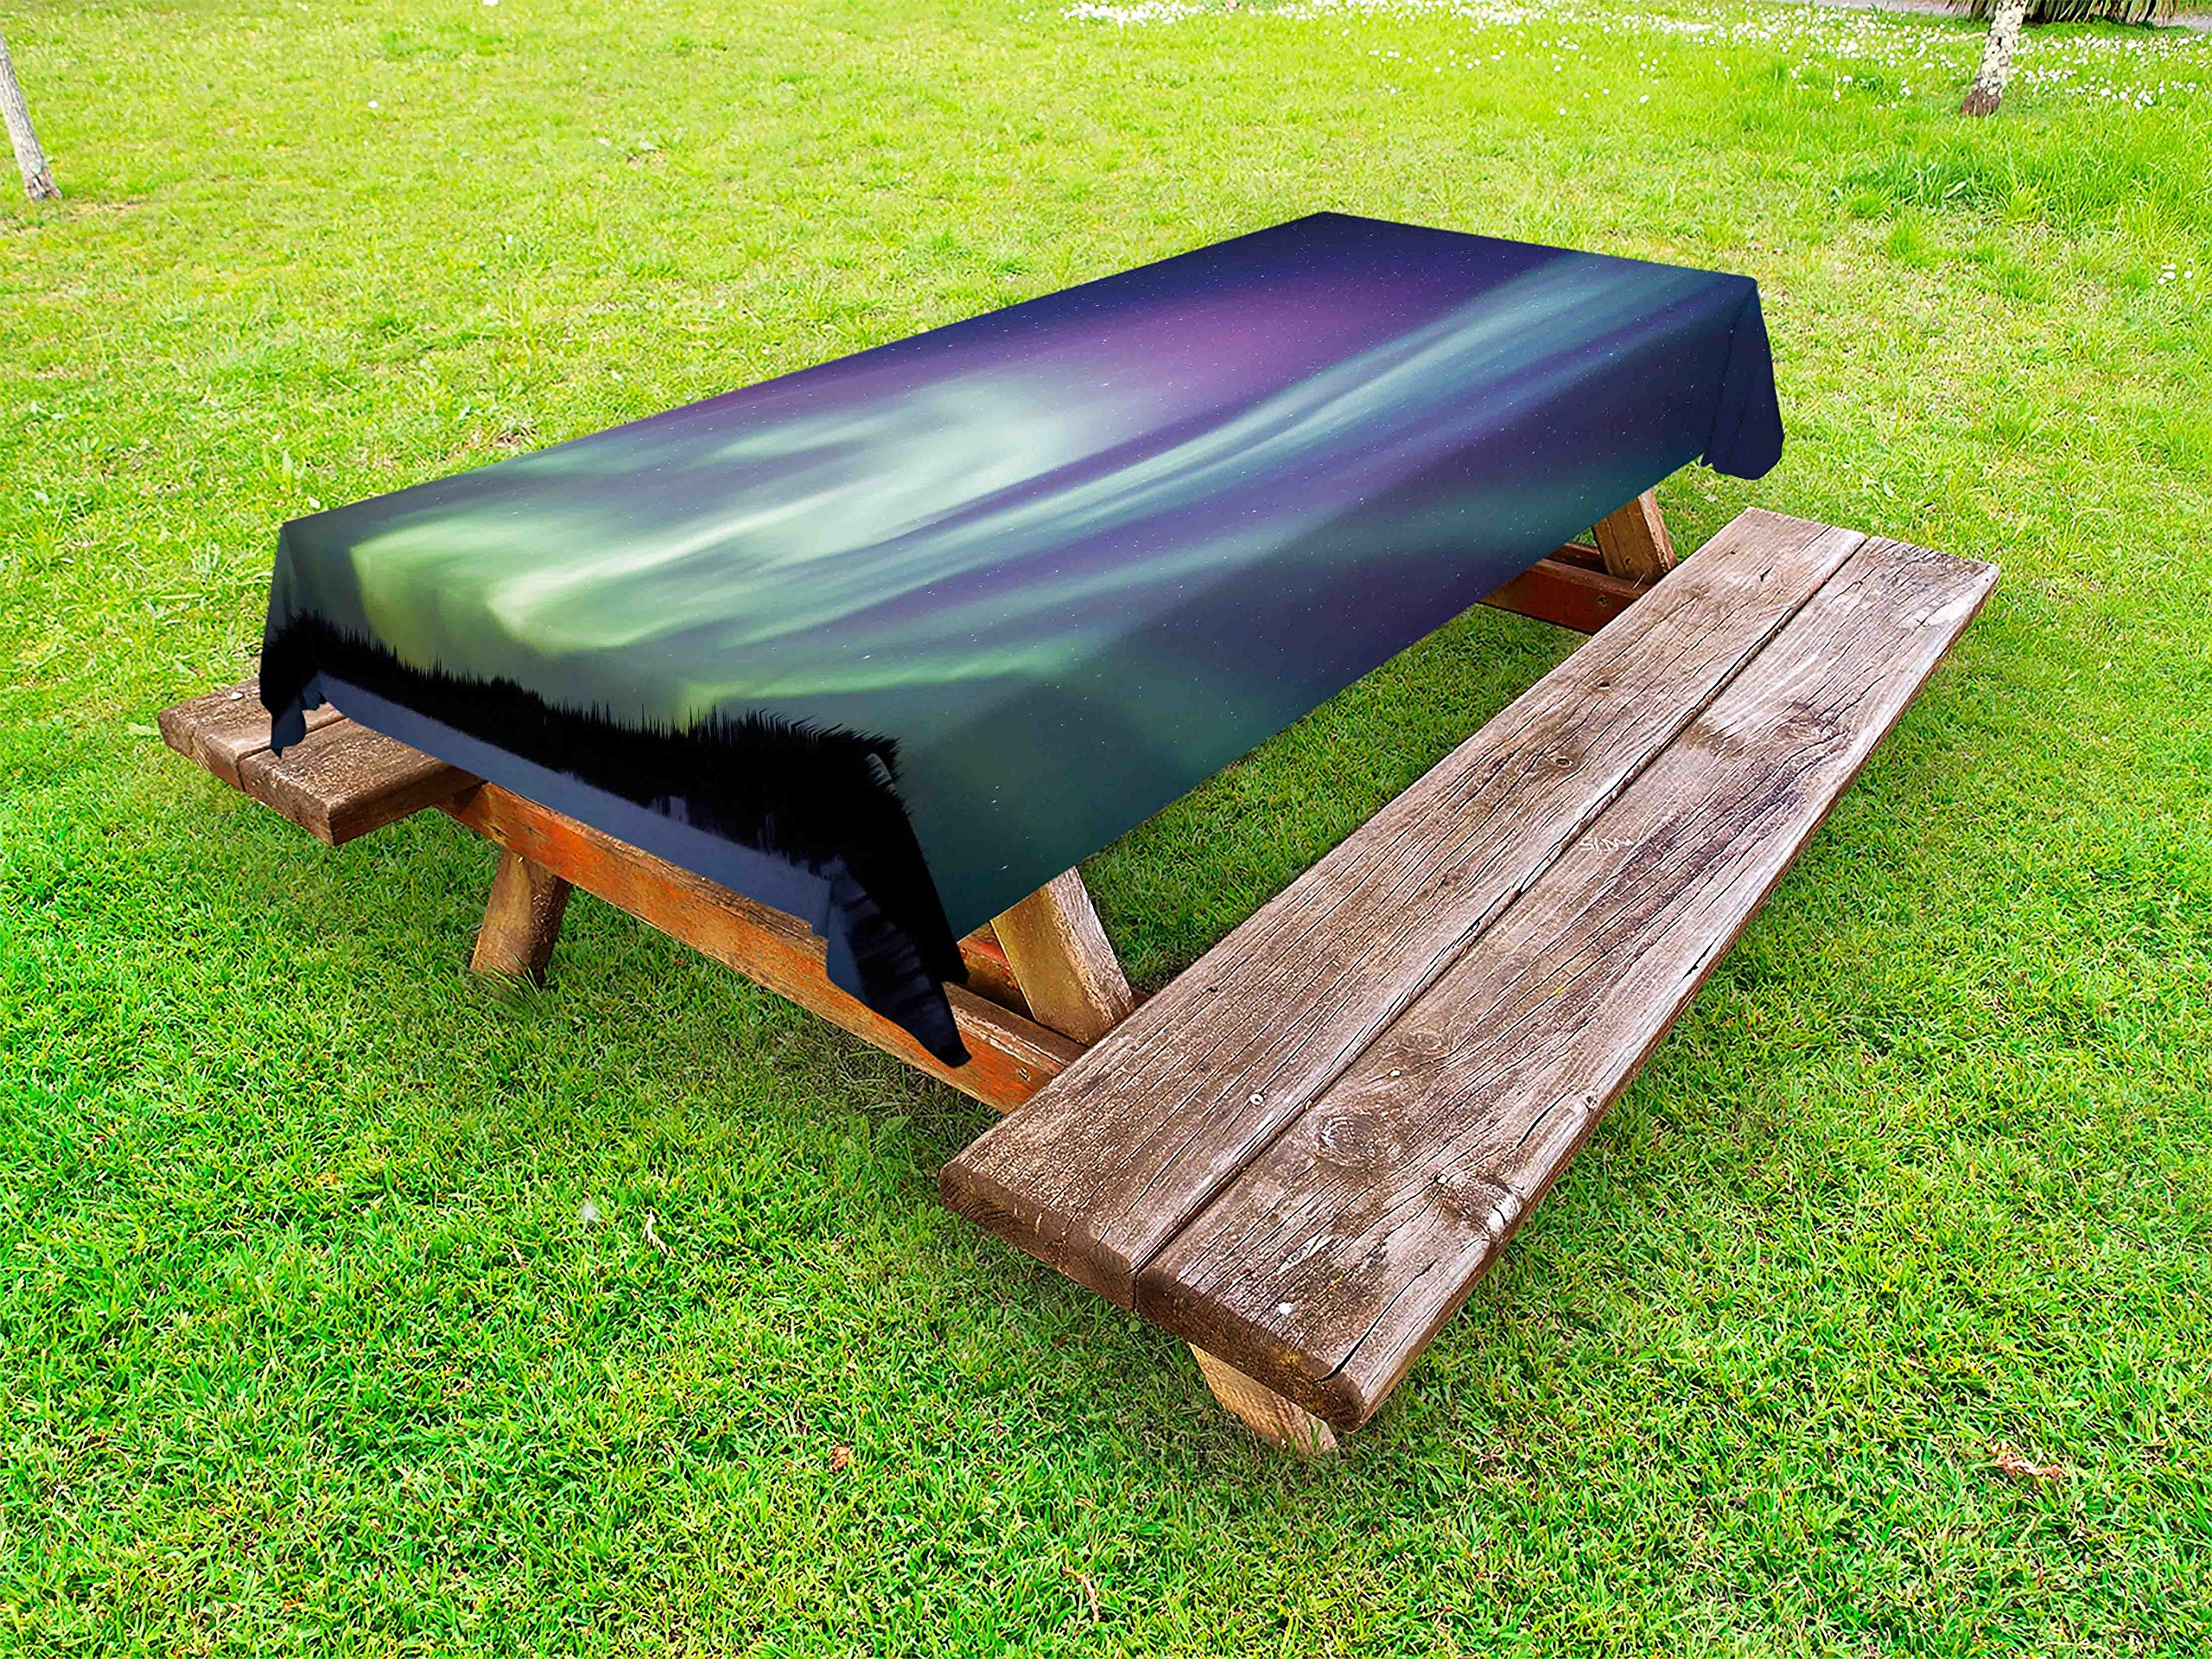 Ambesonne Aurora Borealis Outdoor Tablecloth, Exquisite Atmosphere Solar Starry Sky Calming Night Image, Decorative Washable Picnic Table Cloth, 58 X 104 inches, Mint Green Dark Blue Violet